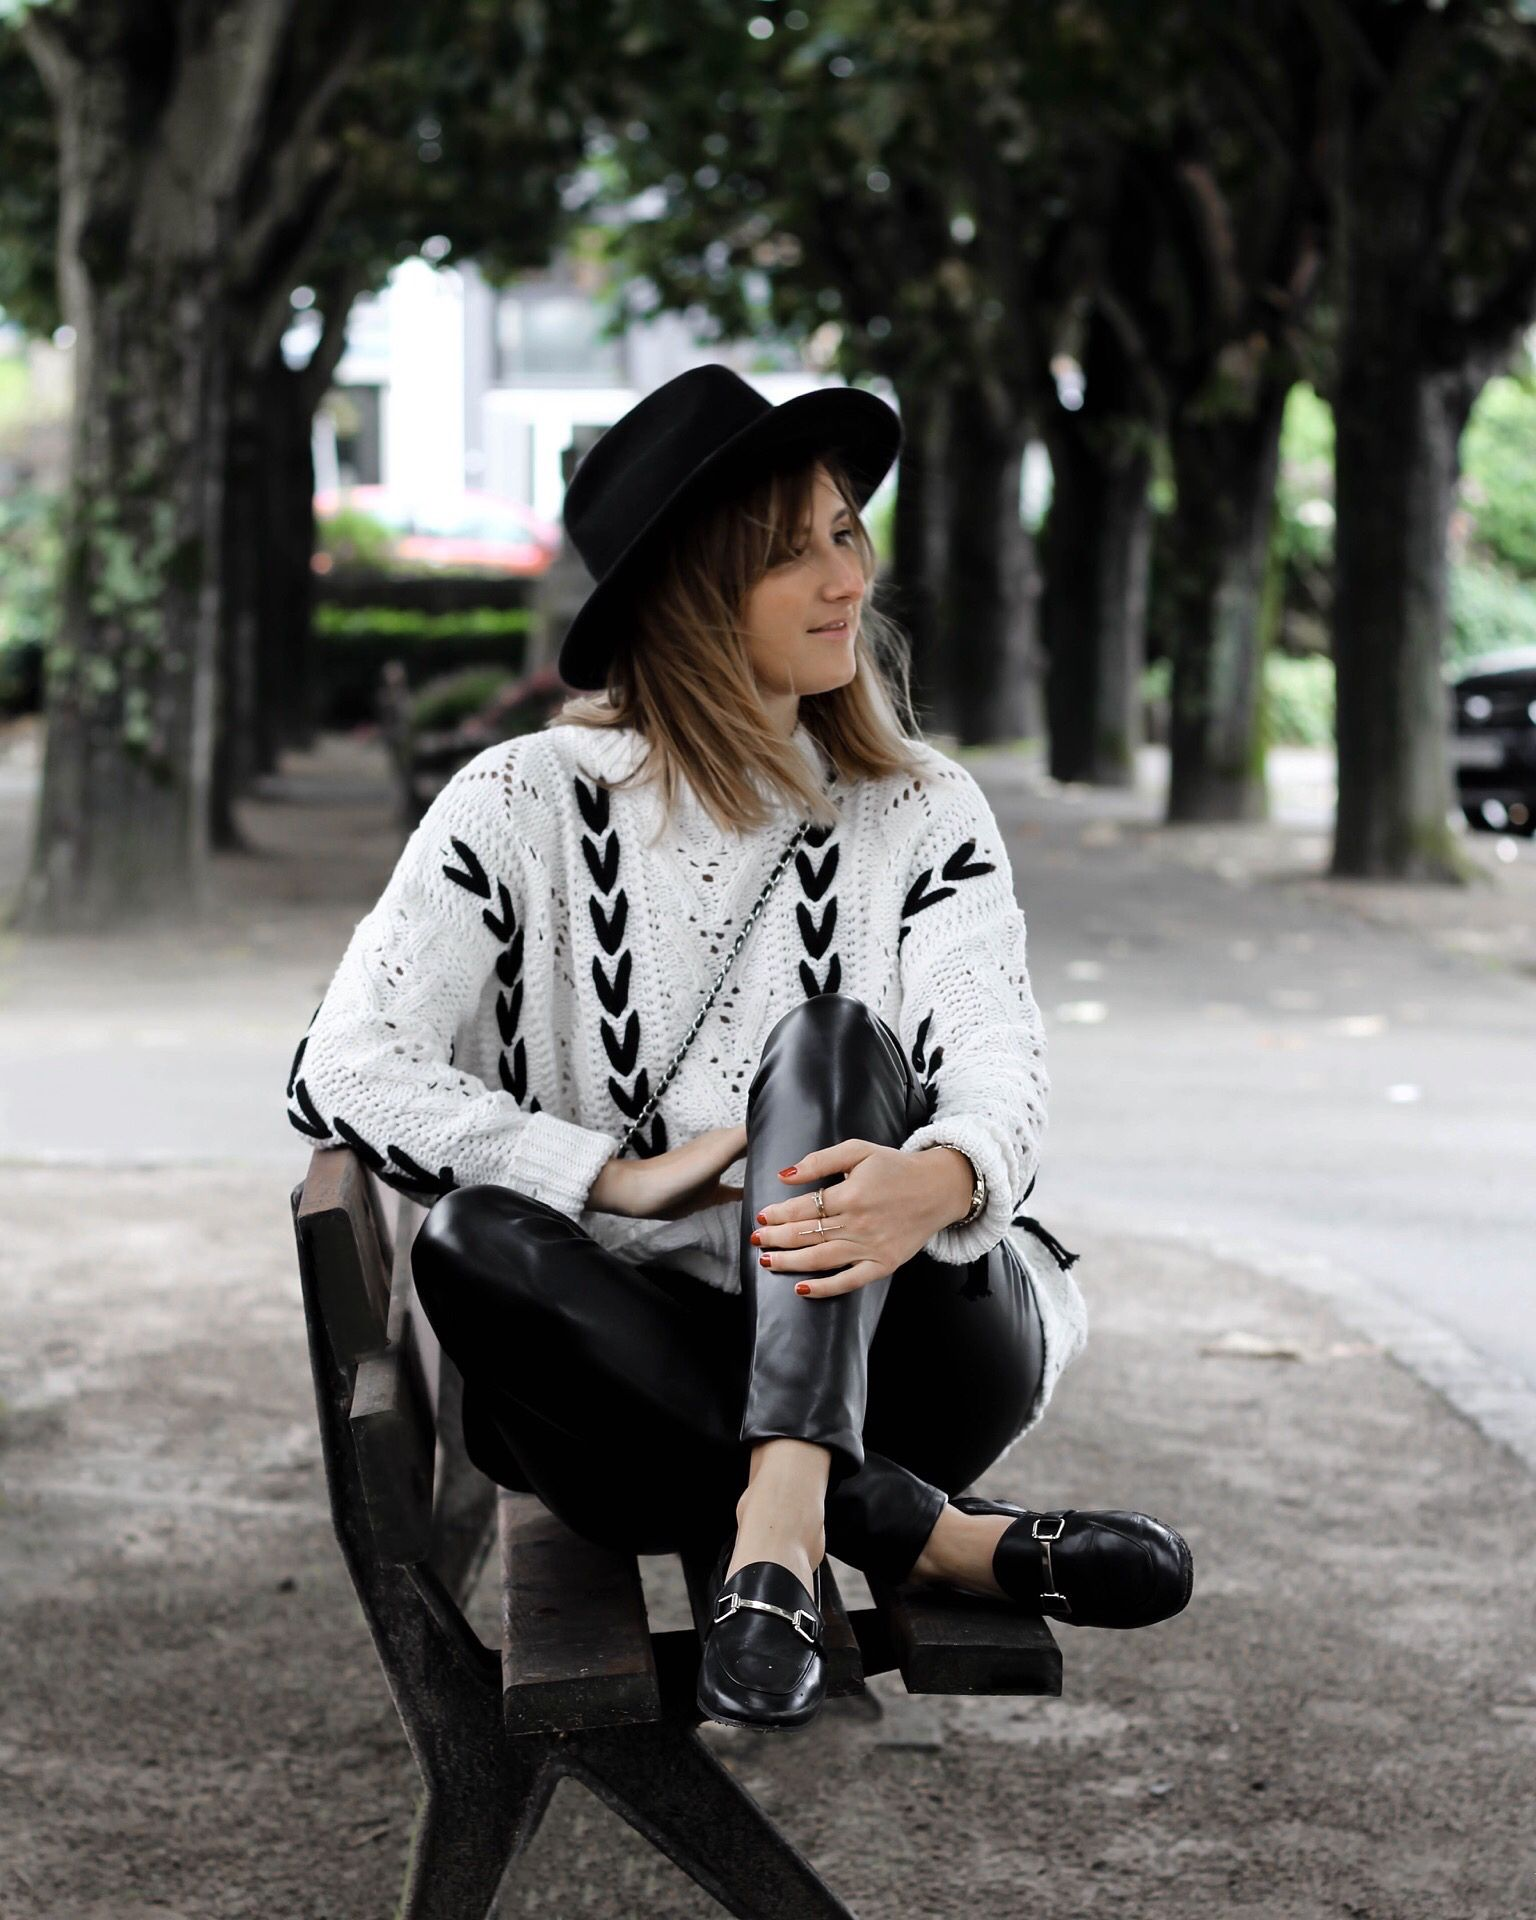 Jonak Girls Floriane Lt Is Wearing Our Sempre Loafers In Black